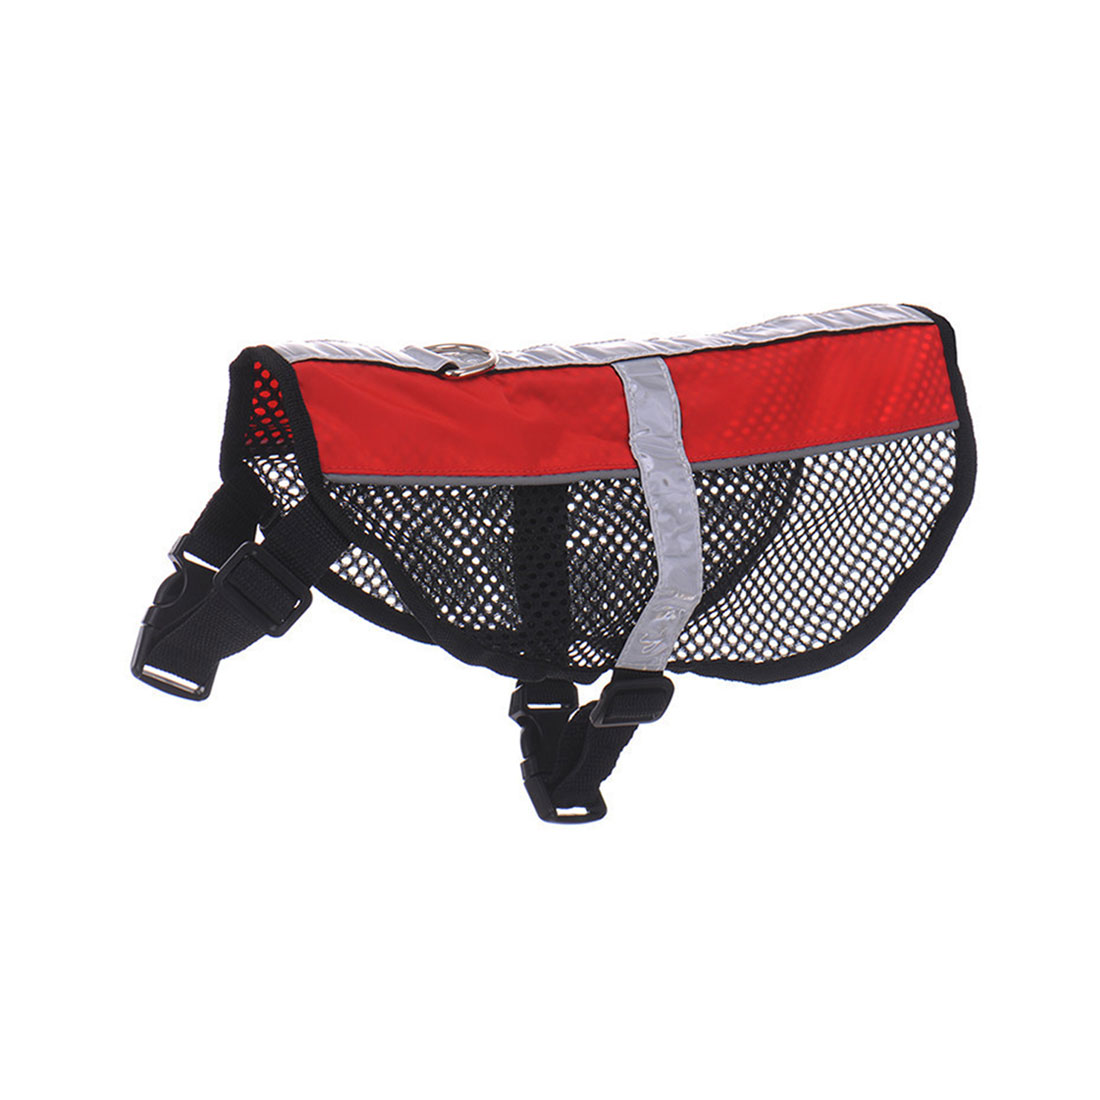 Service Dog Mesh Vest Harness Cool Comfort Nylon Puppy High Visibility Safety Jacket Red S